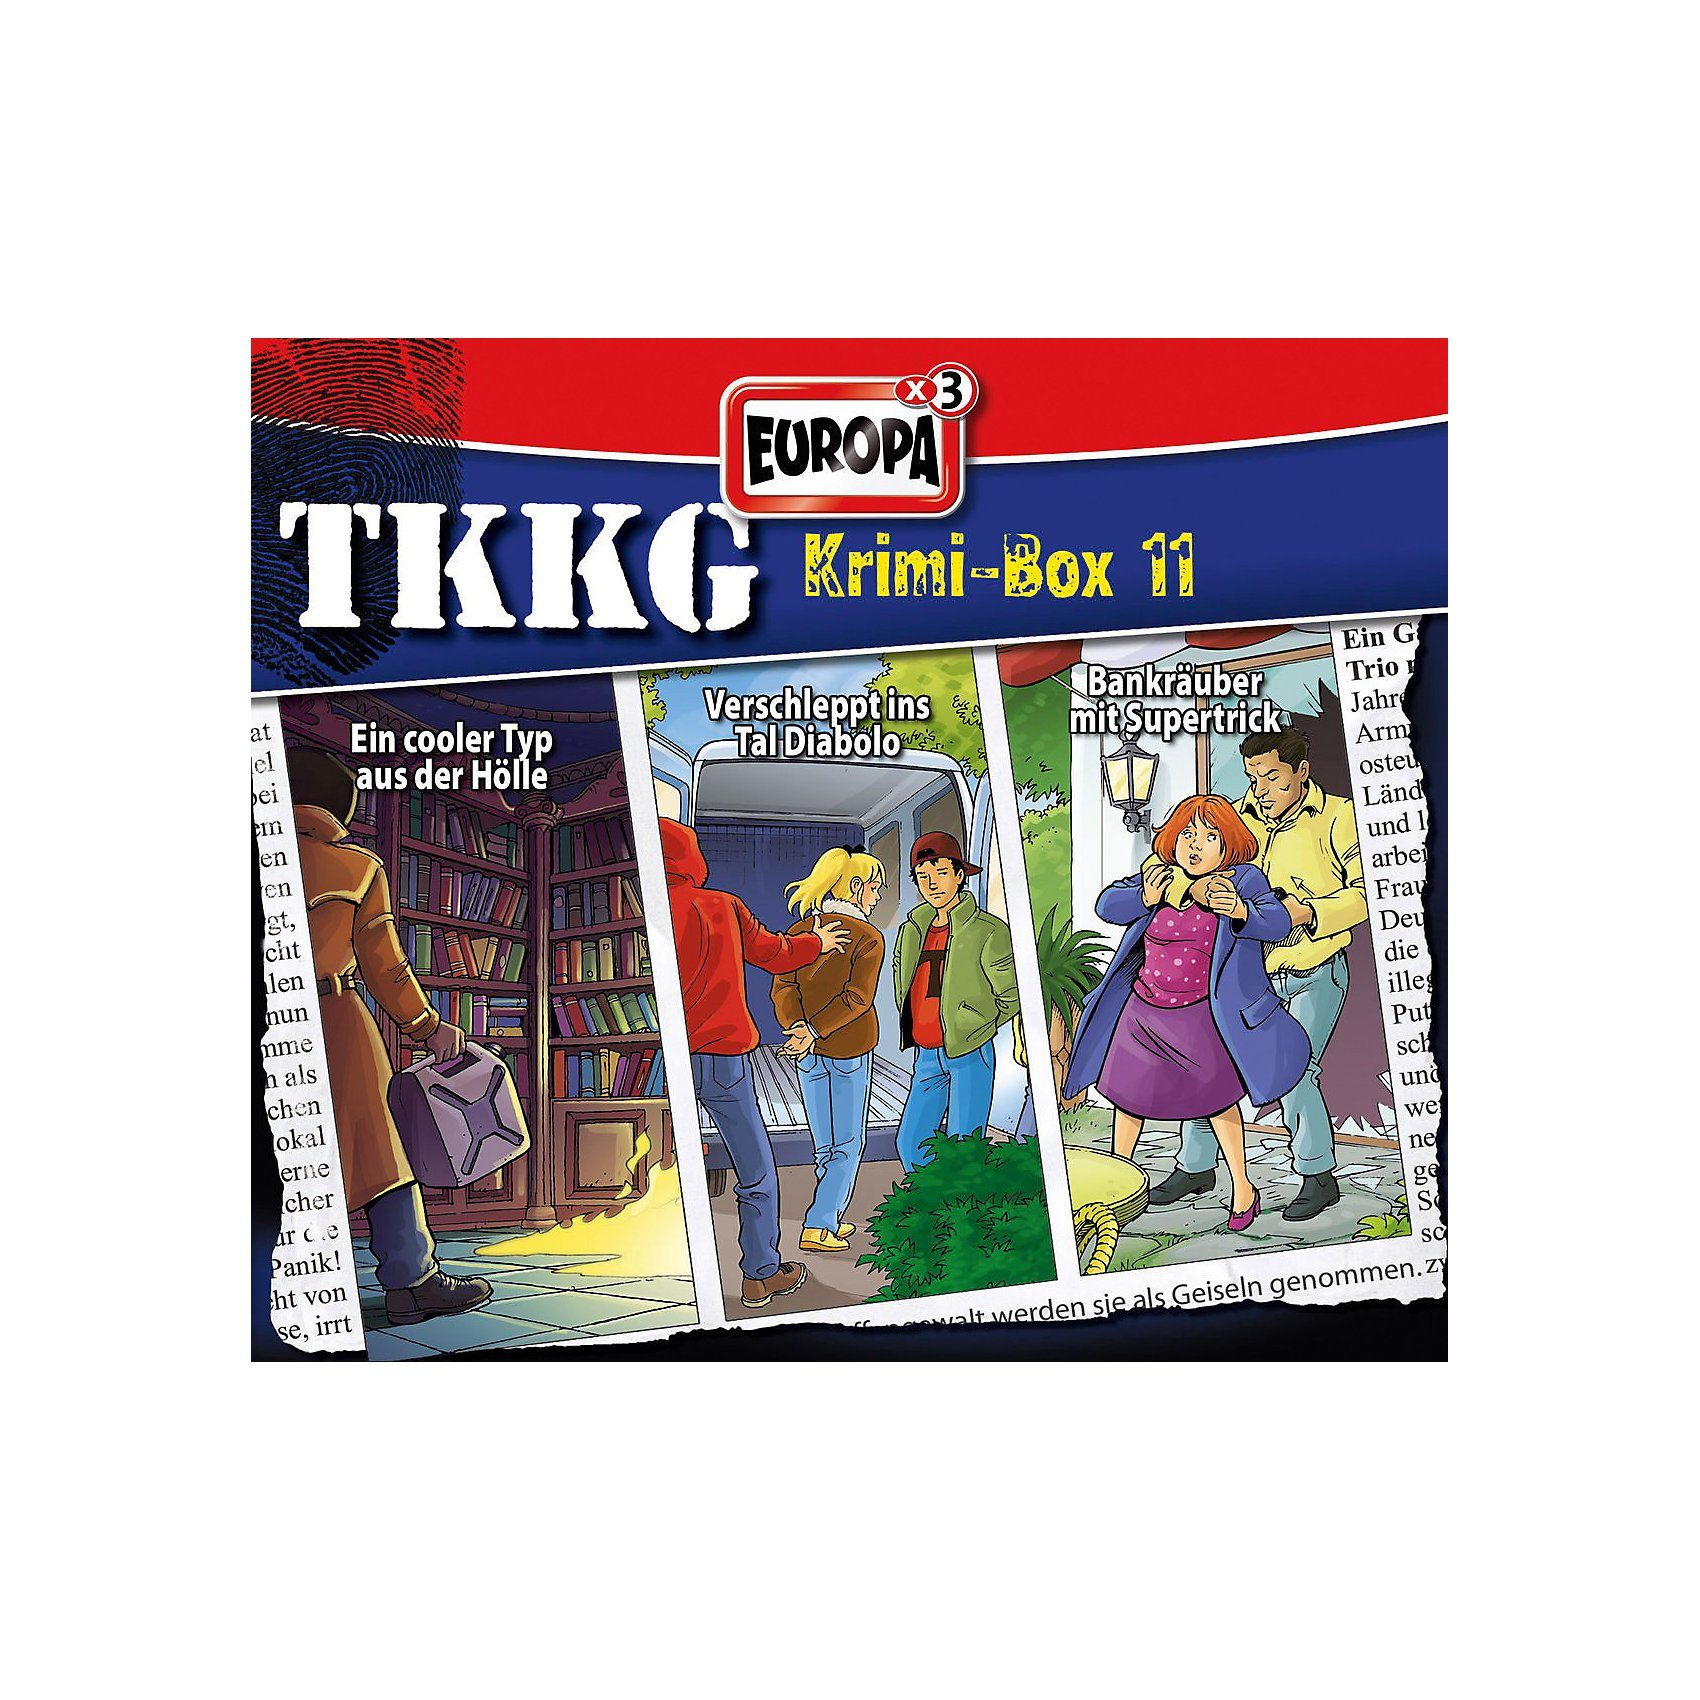 Sony CD TKKG - Krimi-Box 11